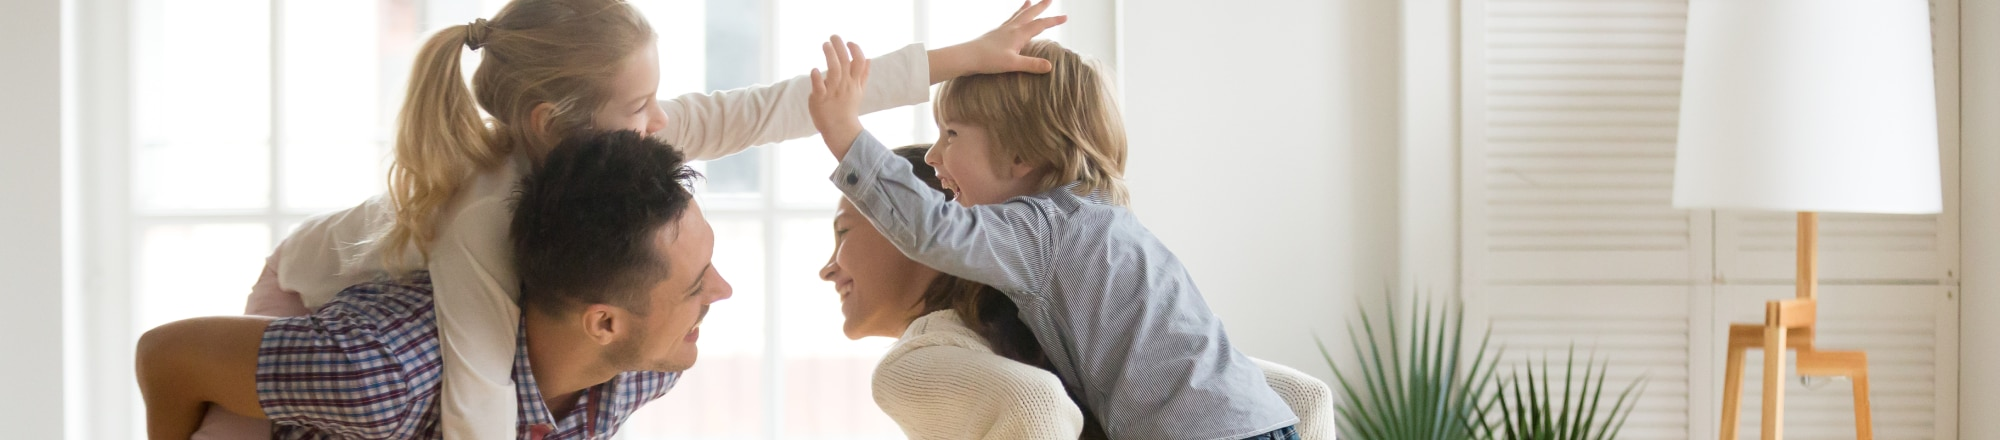 Parenting Hacks For A Stress-Free Home Life